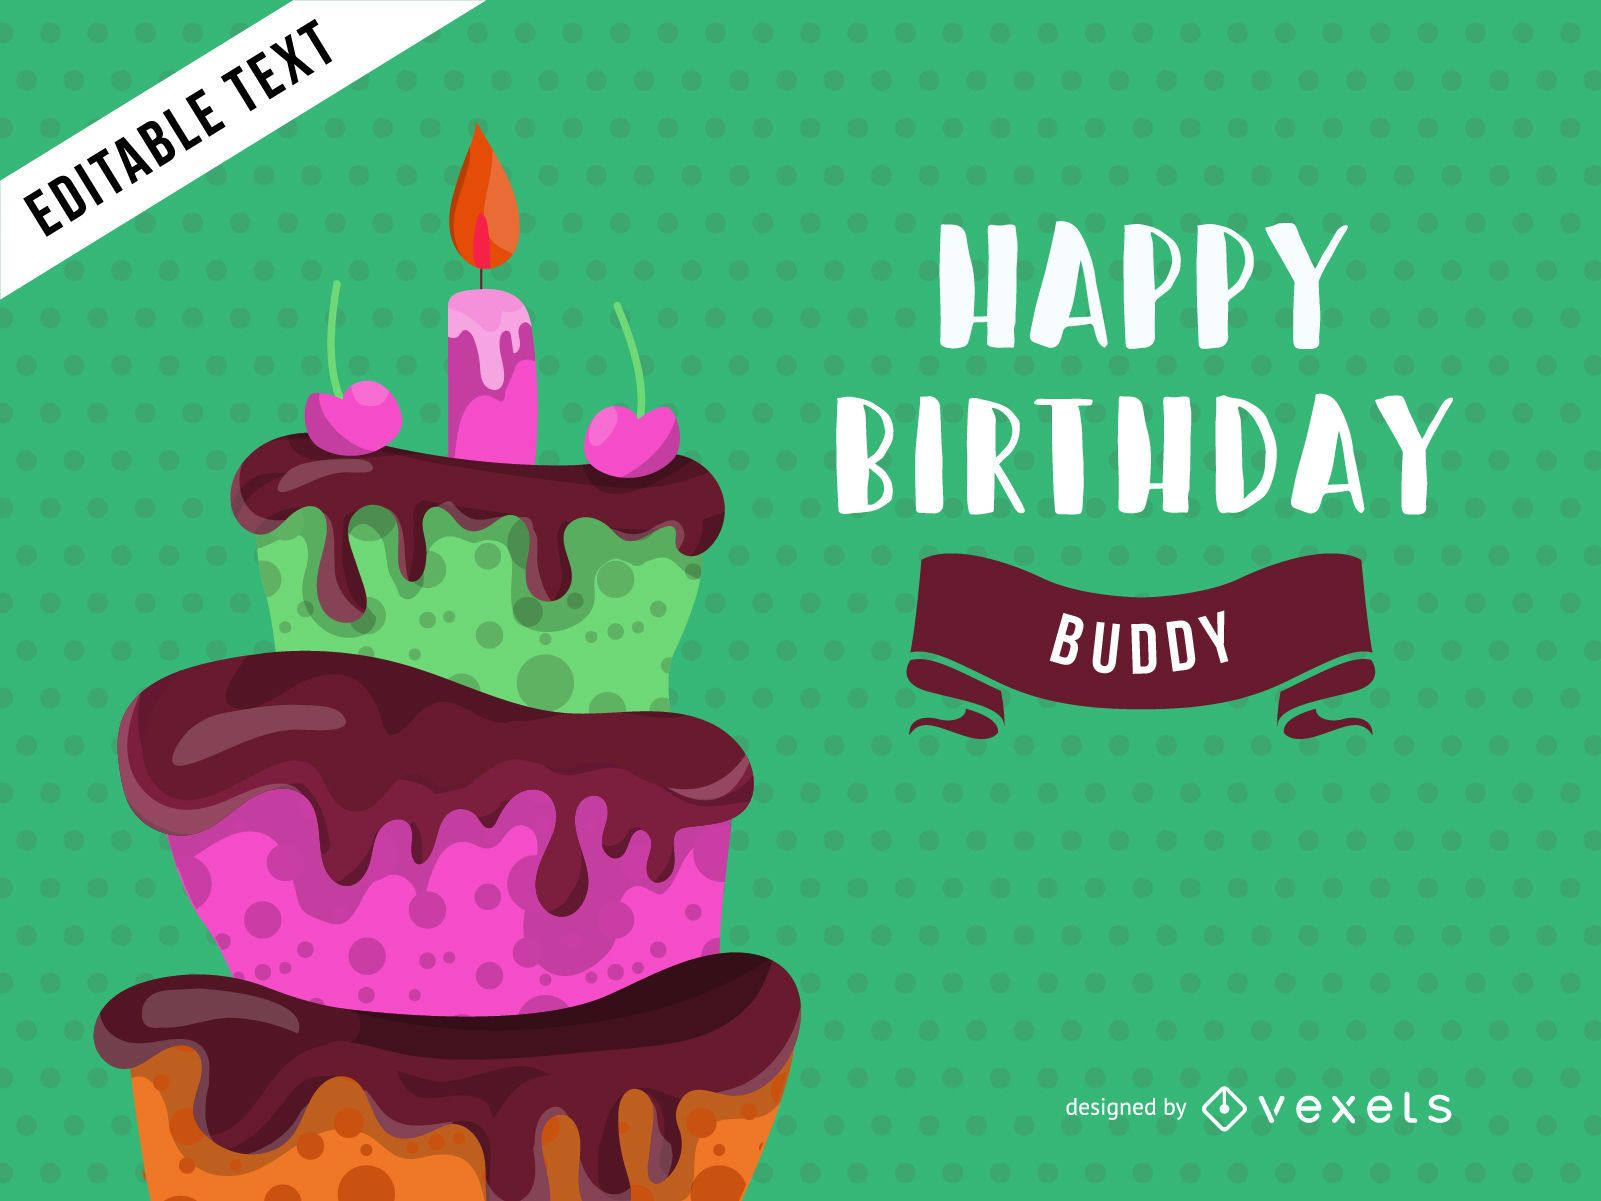 Birthday greeting card design with cake vector download birthday greeting card design with cake download large image 1601x1201px license image user m4hsunfo